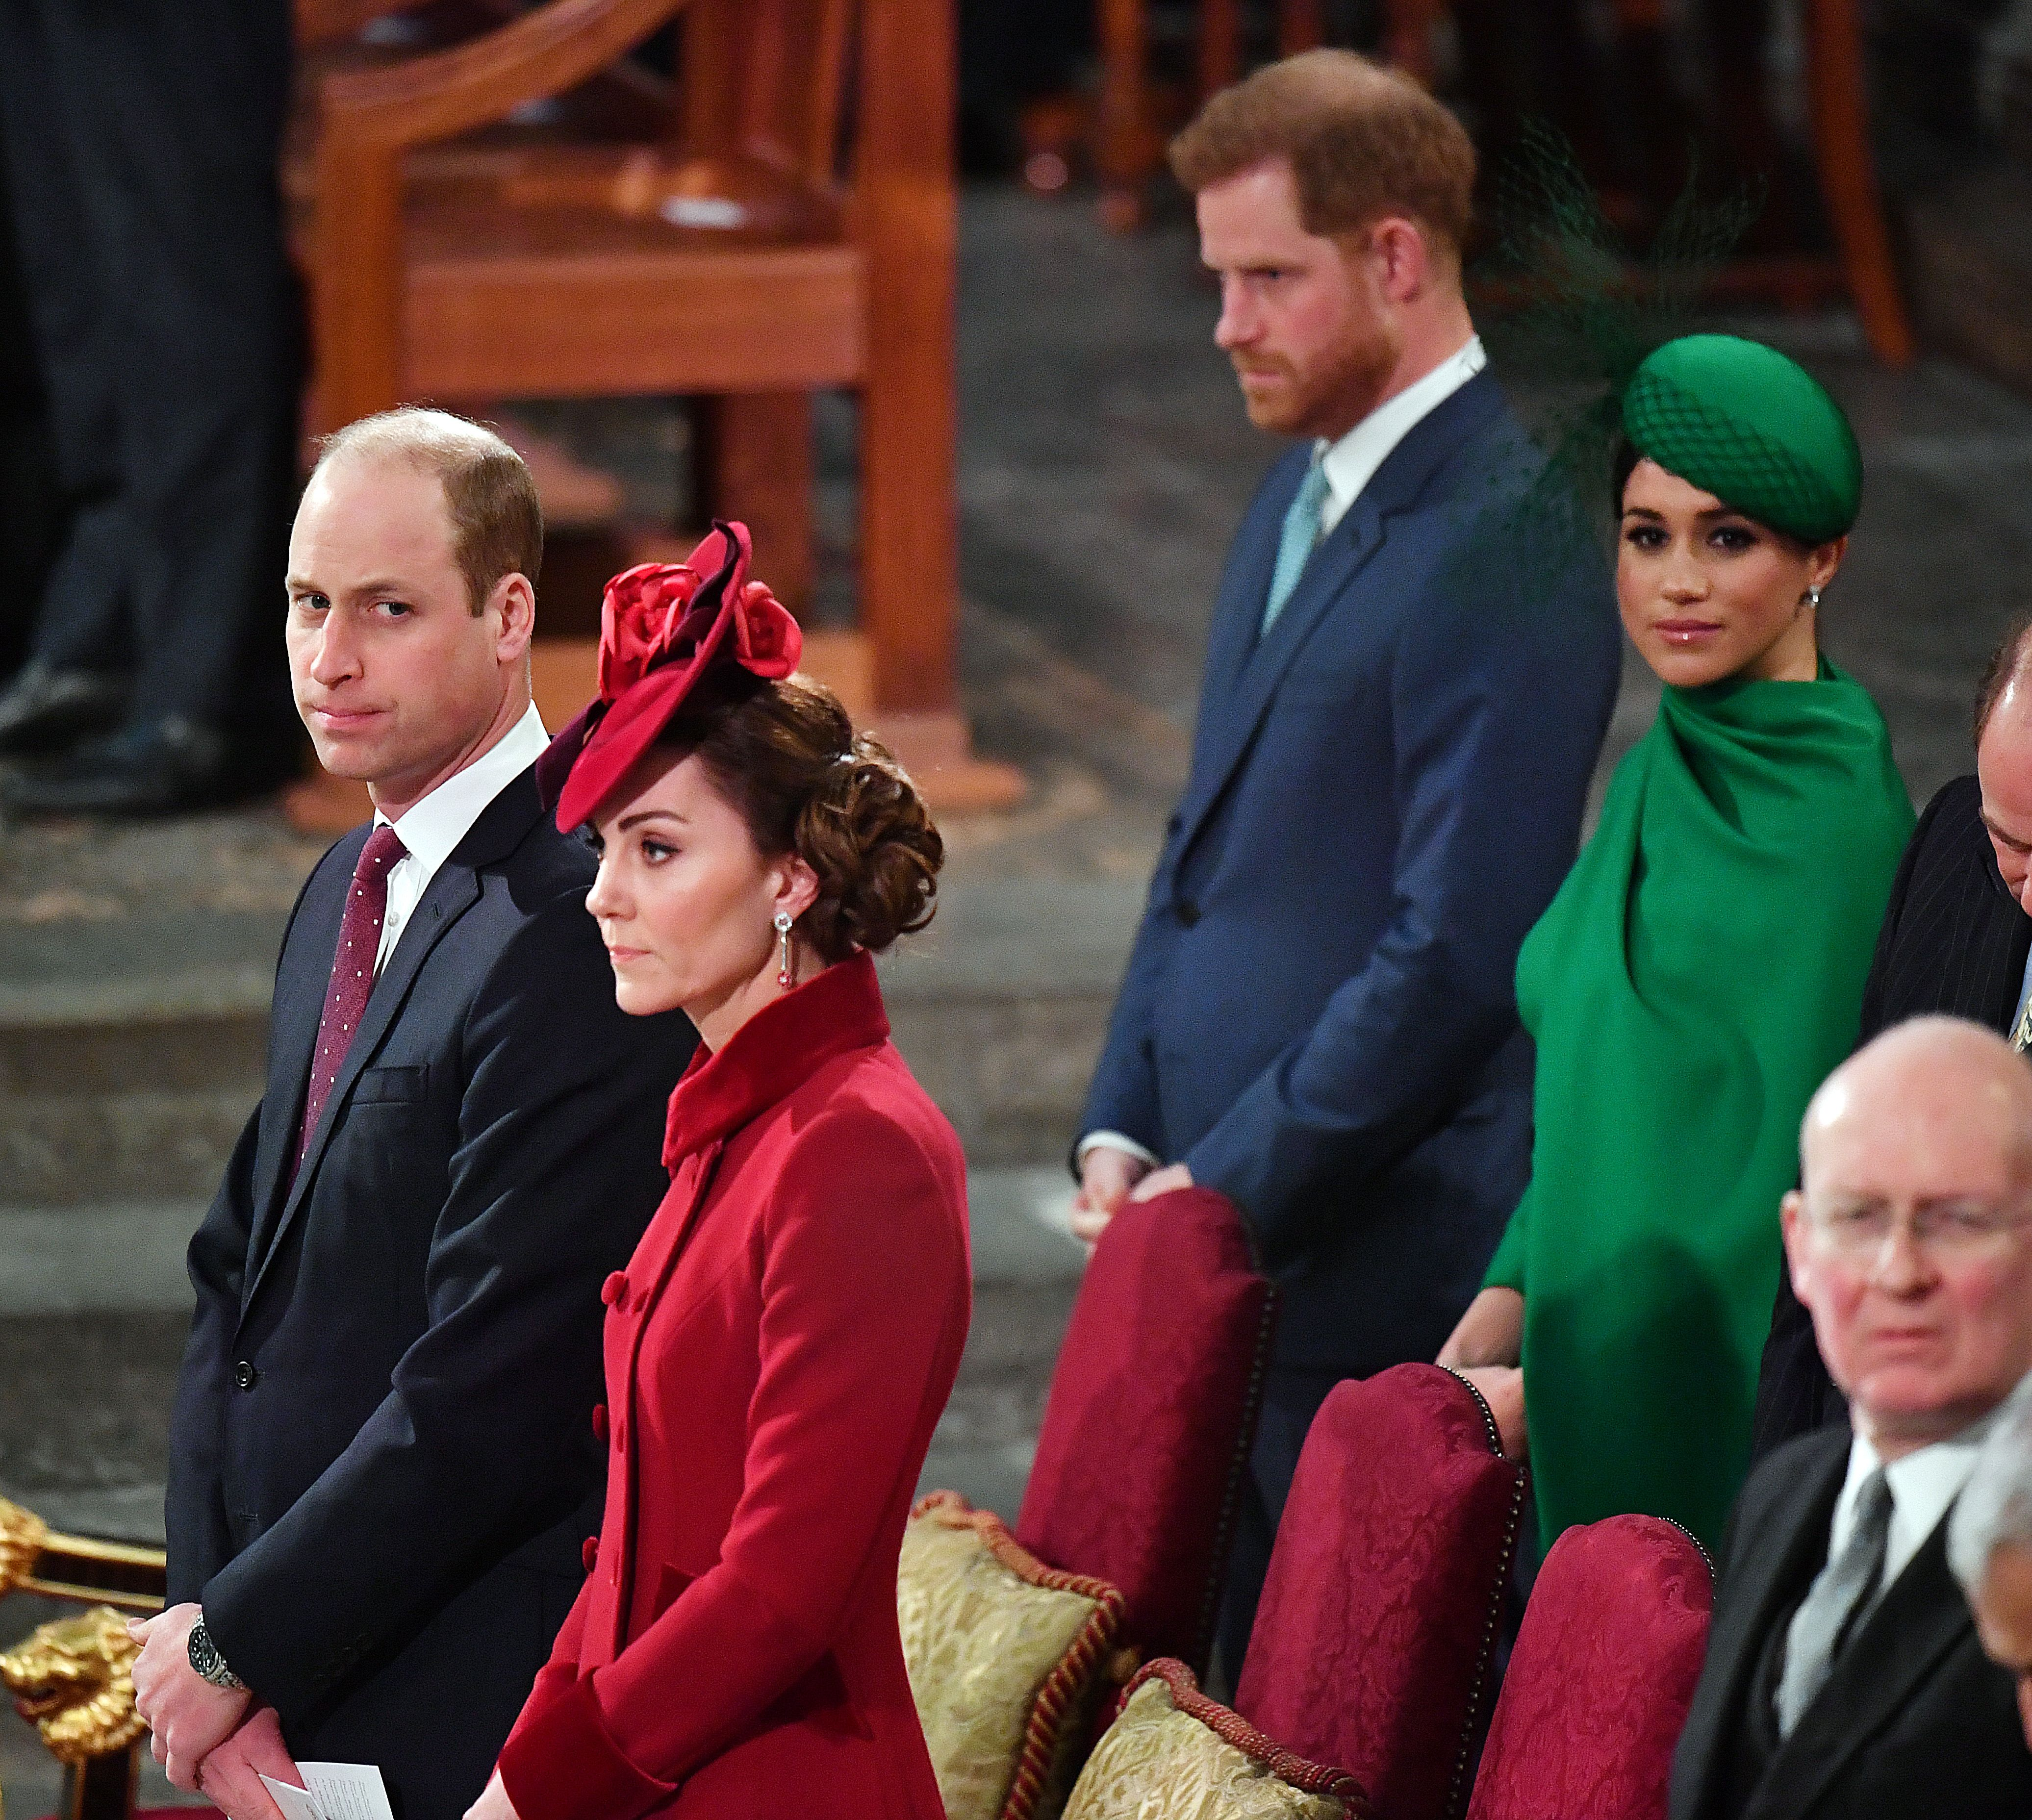 Prince William, Duchess Kate, Prince Harry, and Duchess Meghan at the Commonwealth Day Service on March 9, 2020, in London, England | Photo: Phil Harris - WPA Pool/Getty Images